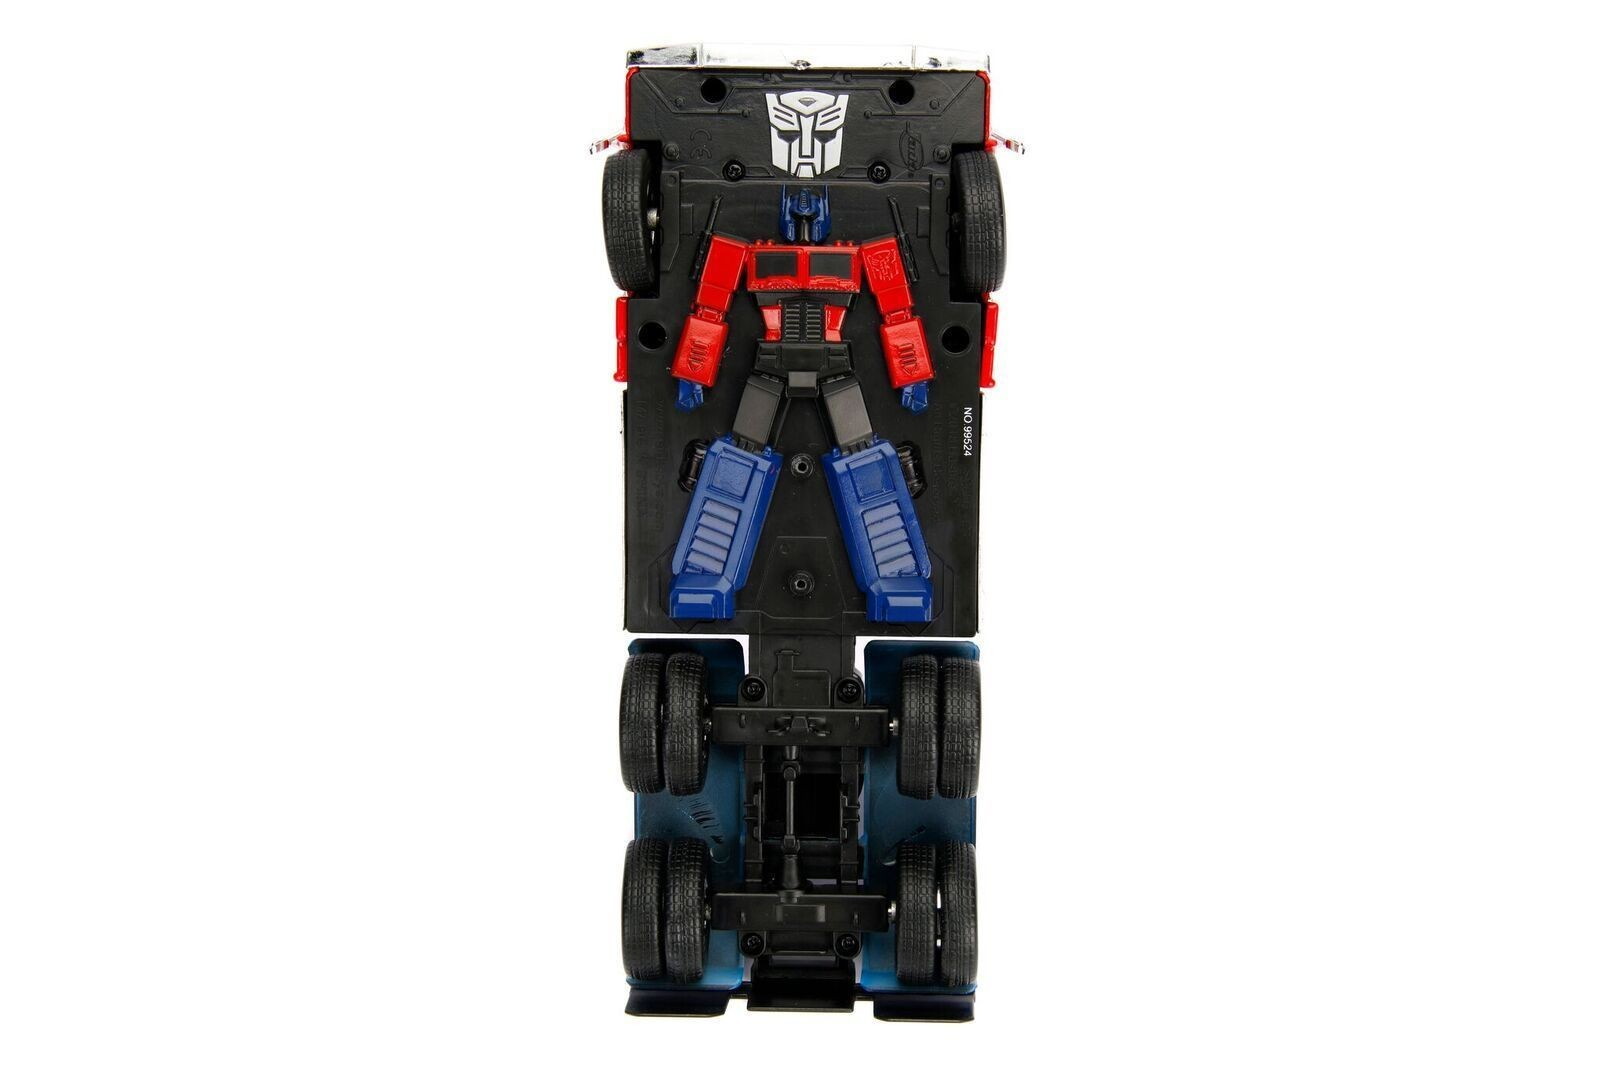 Transformers News: More Images of Jada Toys G1 Optimus Prime Cab and Comparison to G1 Toy